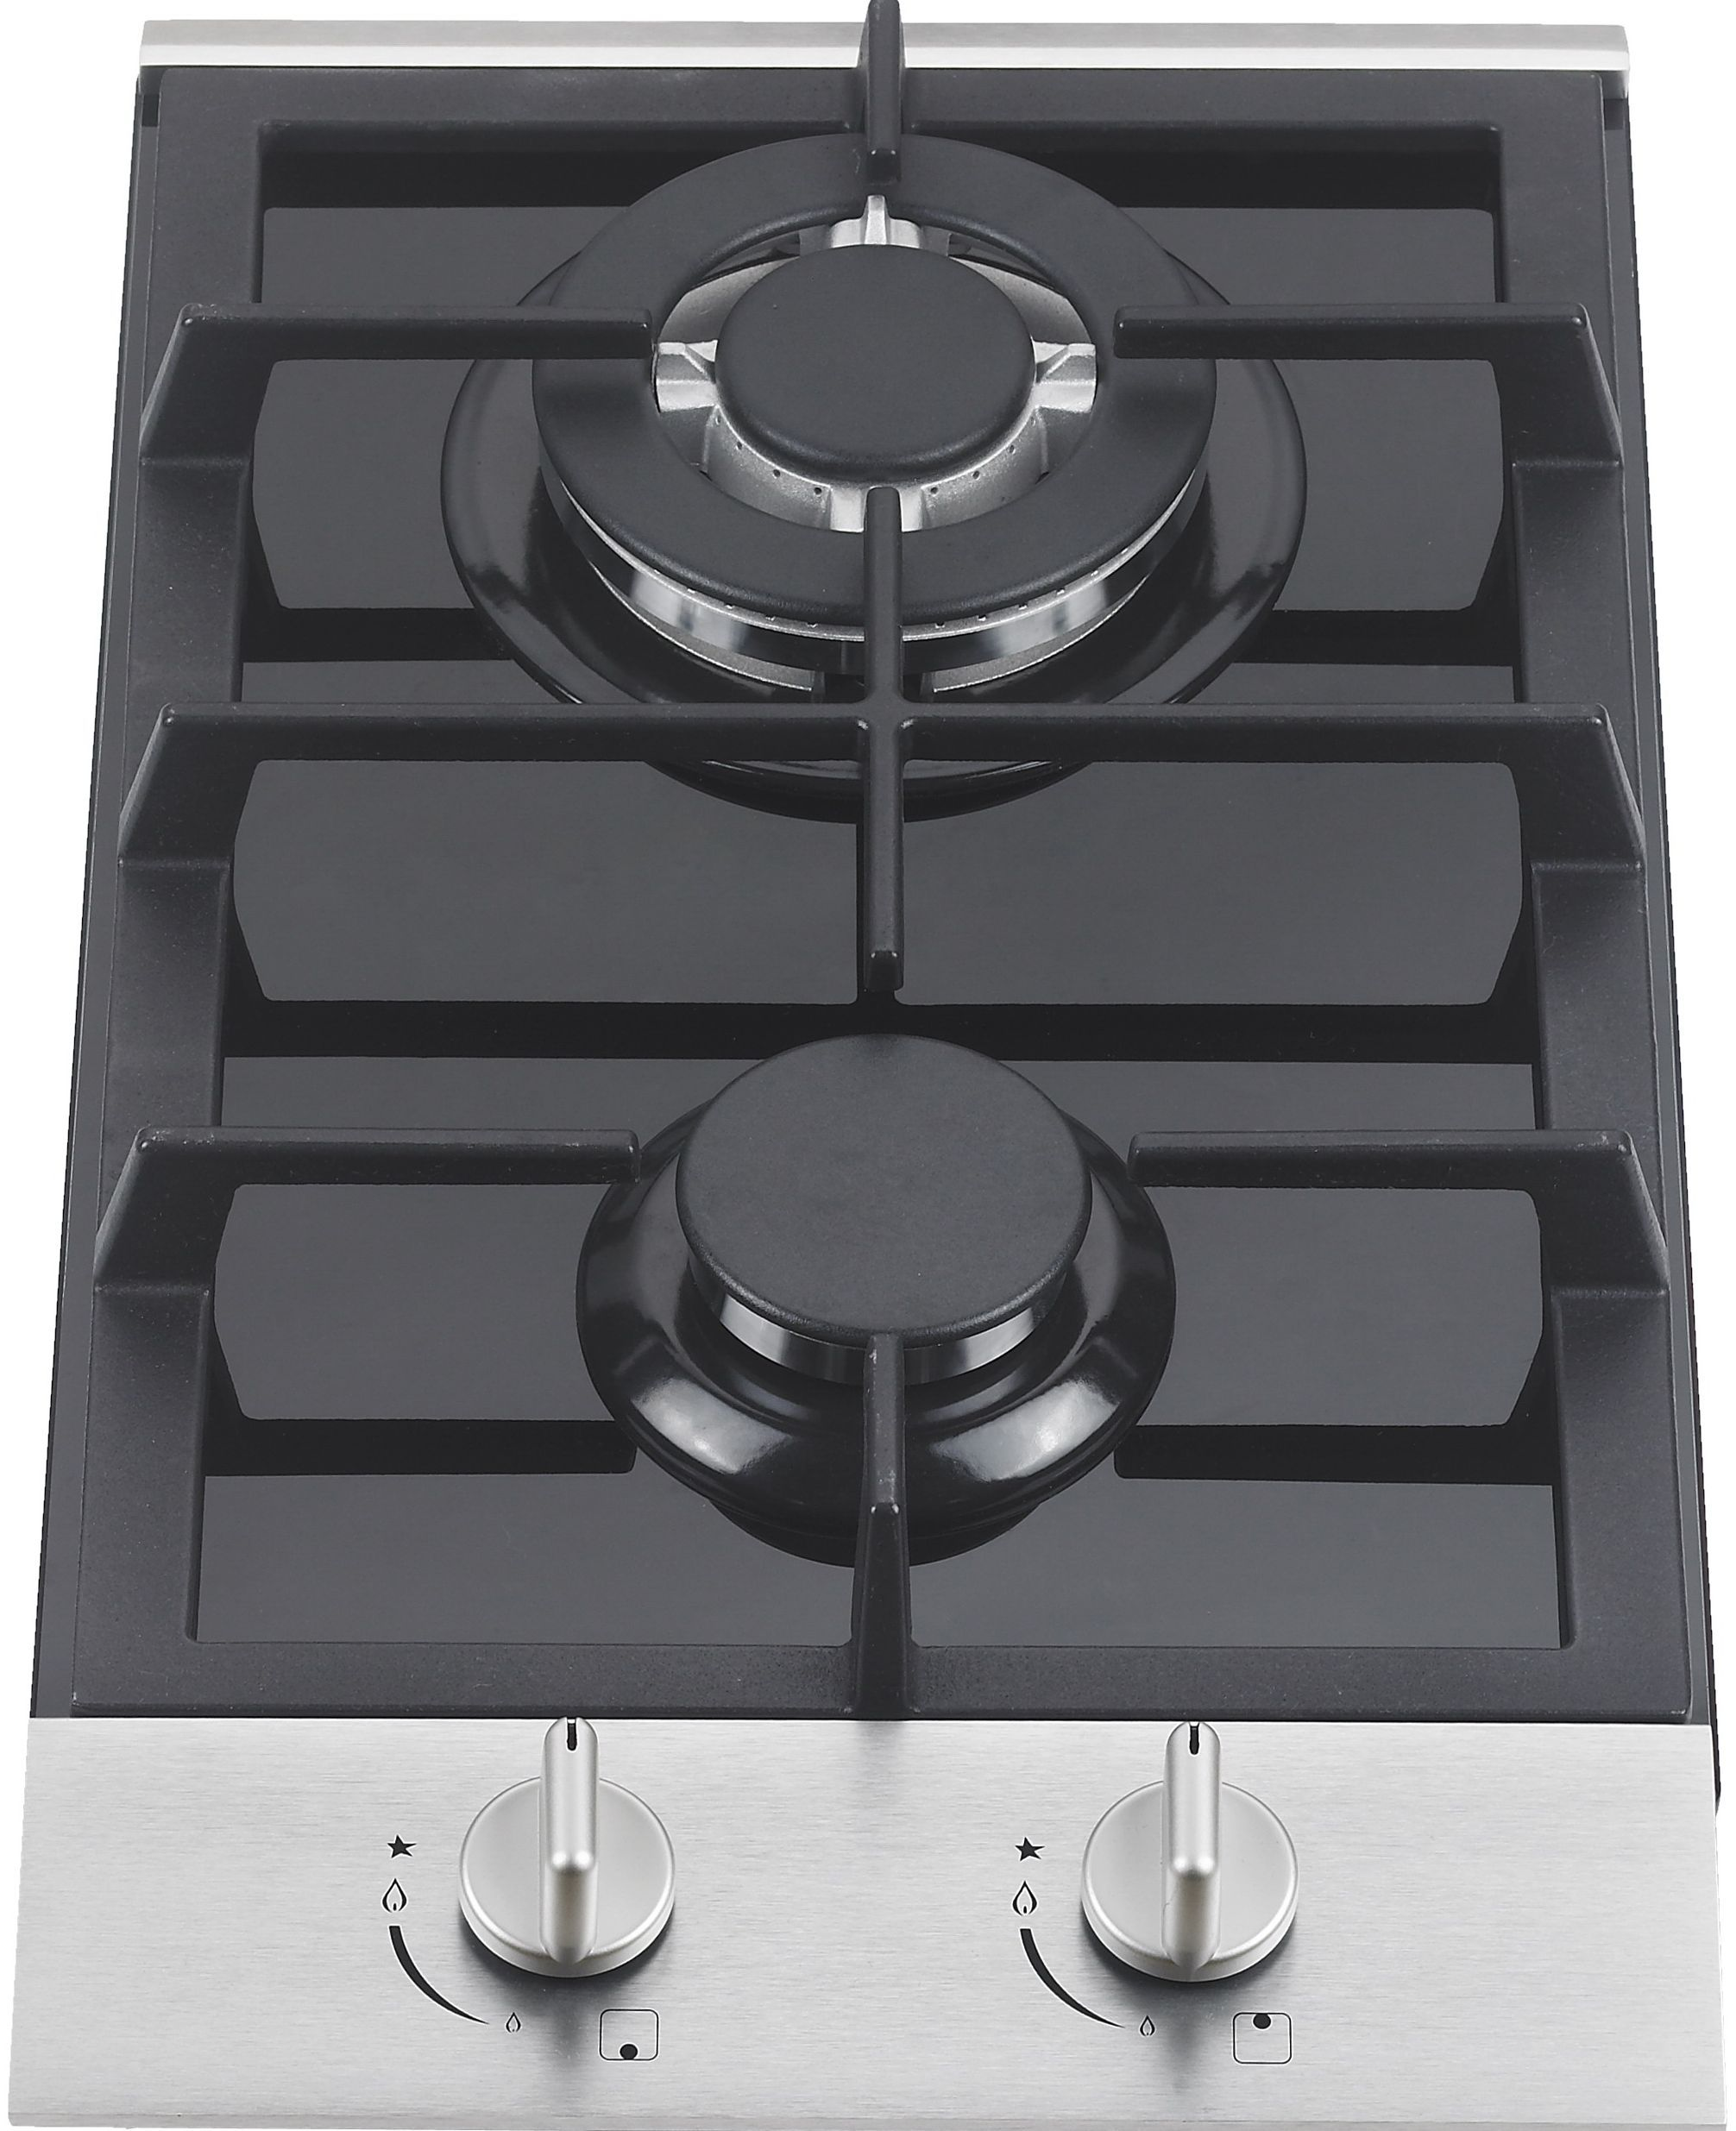 Gas Type Lpg Propane Gas Cooktop Dimension 304mm W X 510mm D X 45 7mm H Without Grate Or 12 W X 20 D X 1 8 H Without Gas Cooktop Gas Cooker Cooktop